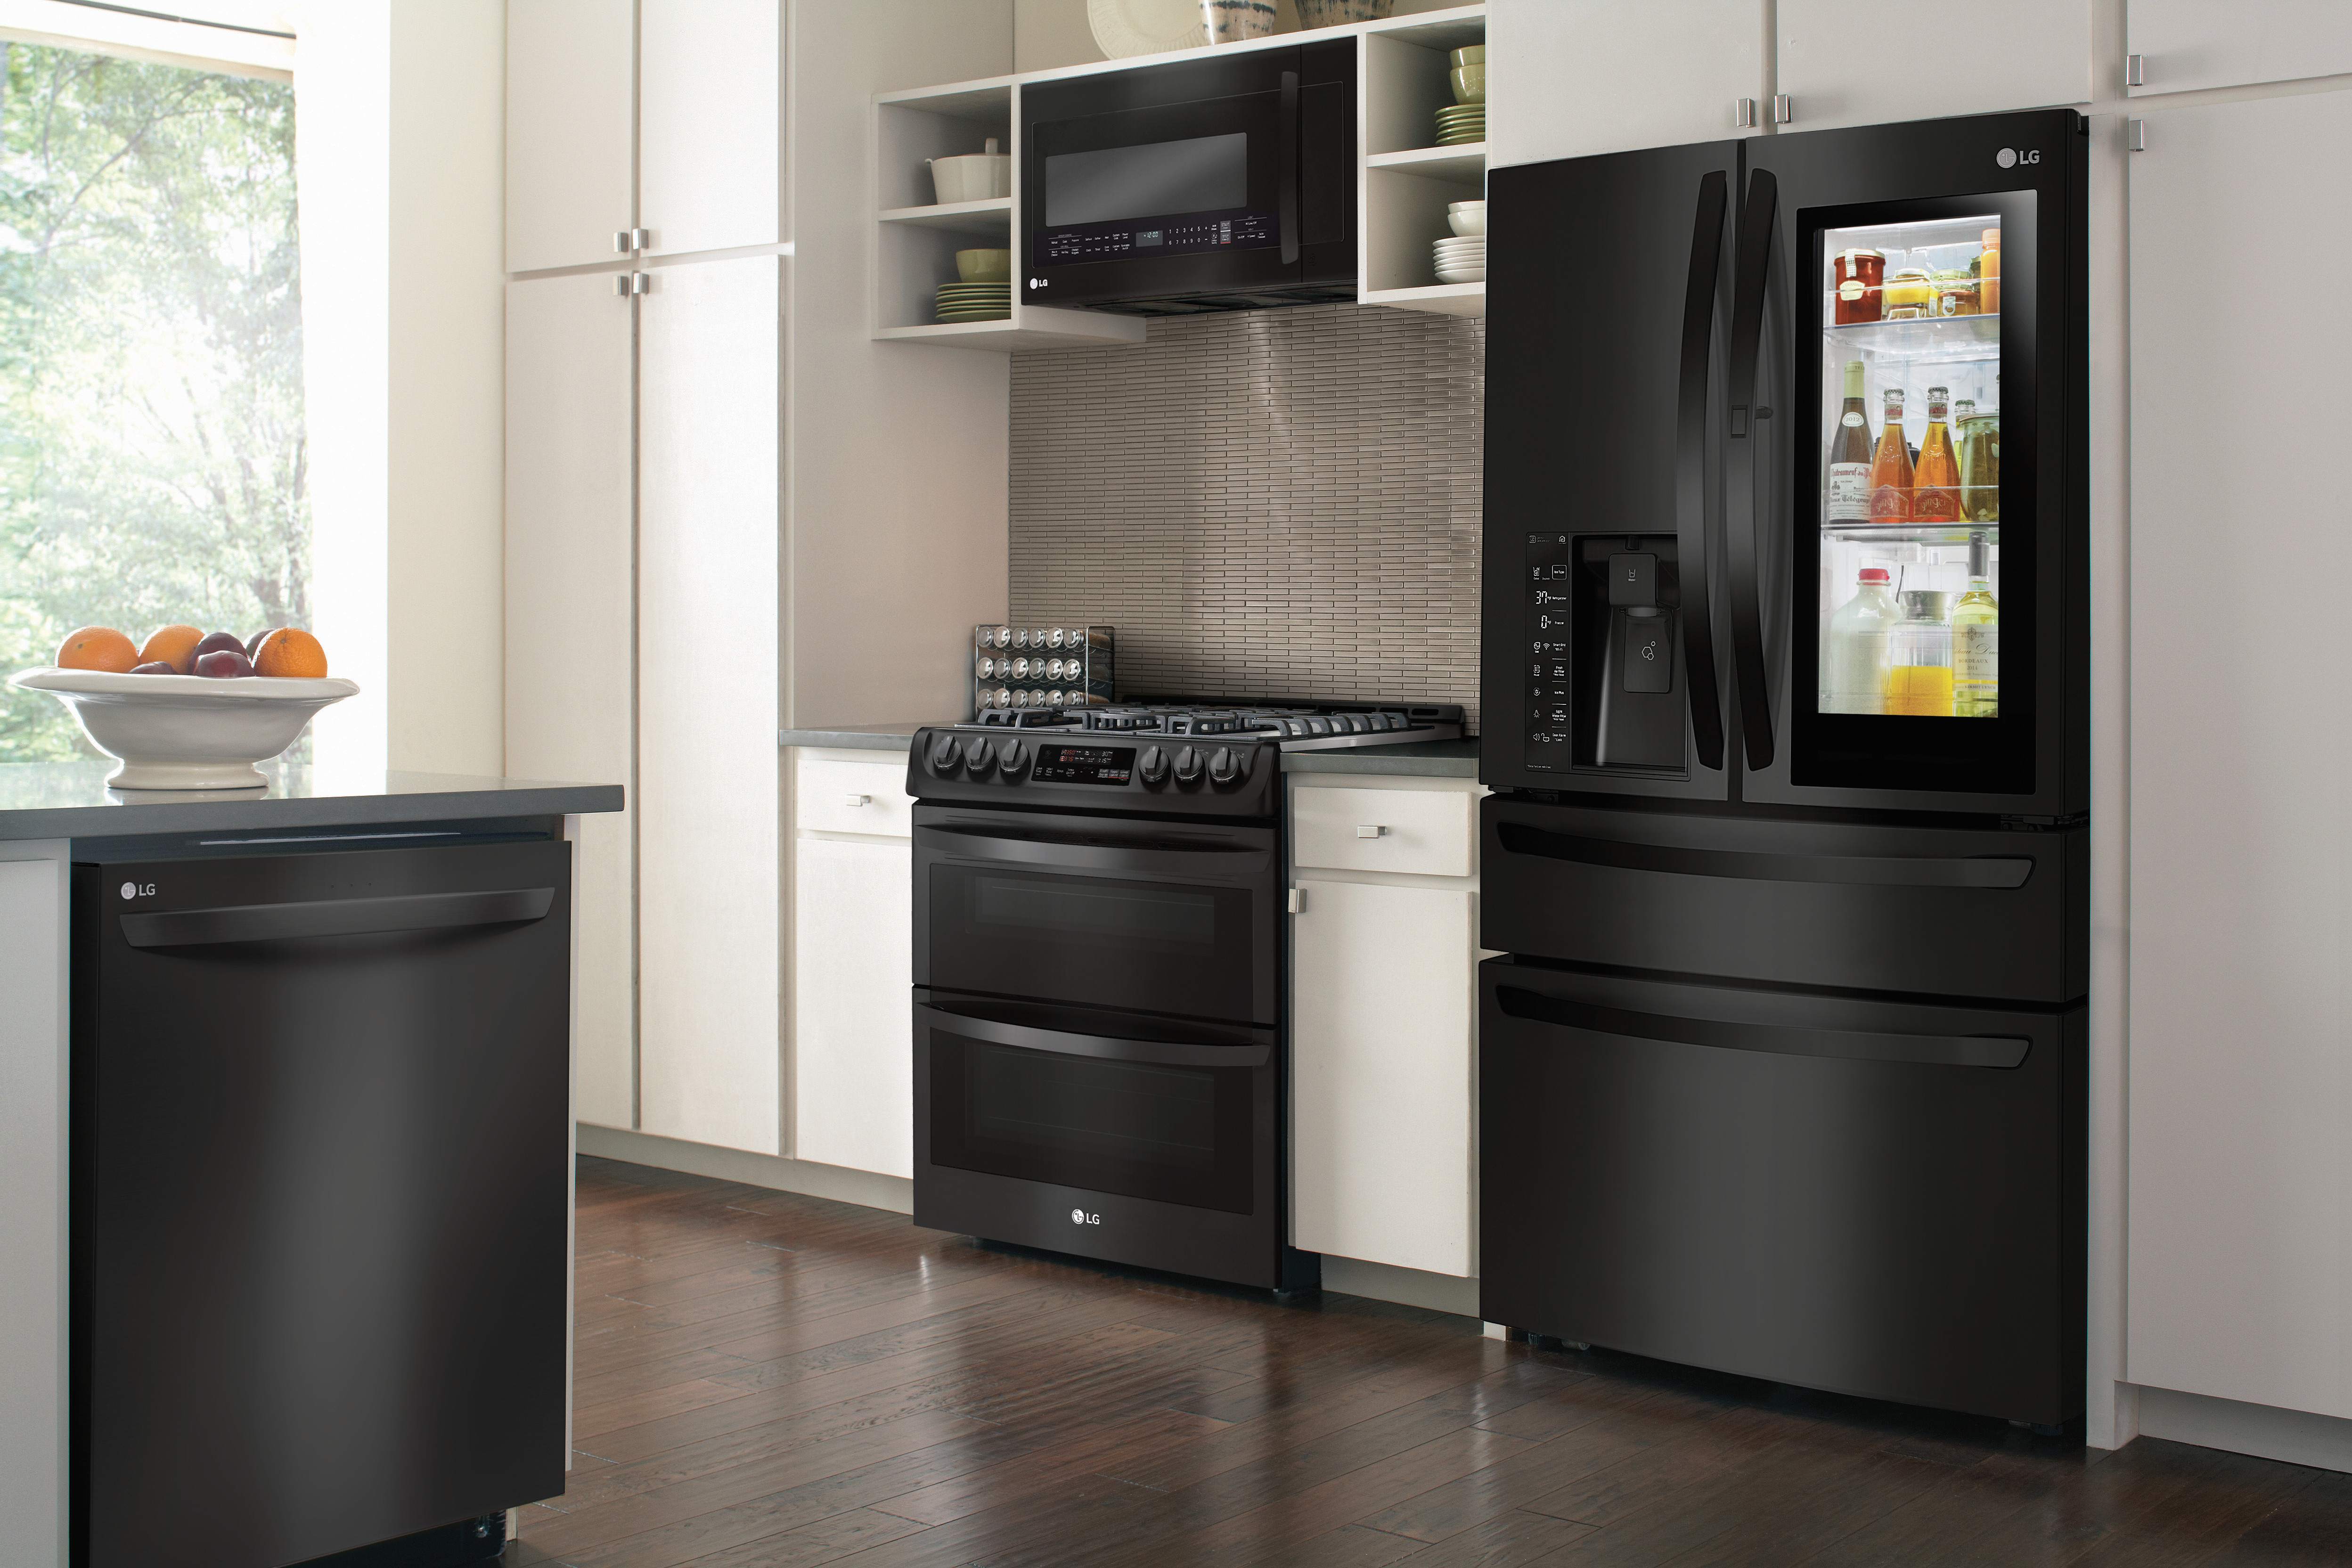 Ready To Upgrade Your Kitchen? Head Over To Best Buy So You Can Check Out  These New Appliances! You Will Be Able To Act Like A Child In A Toy Store!